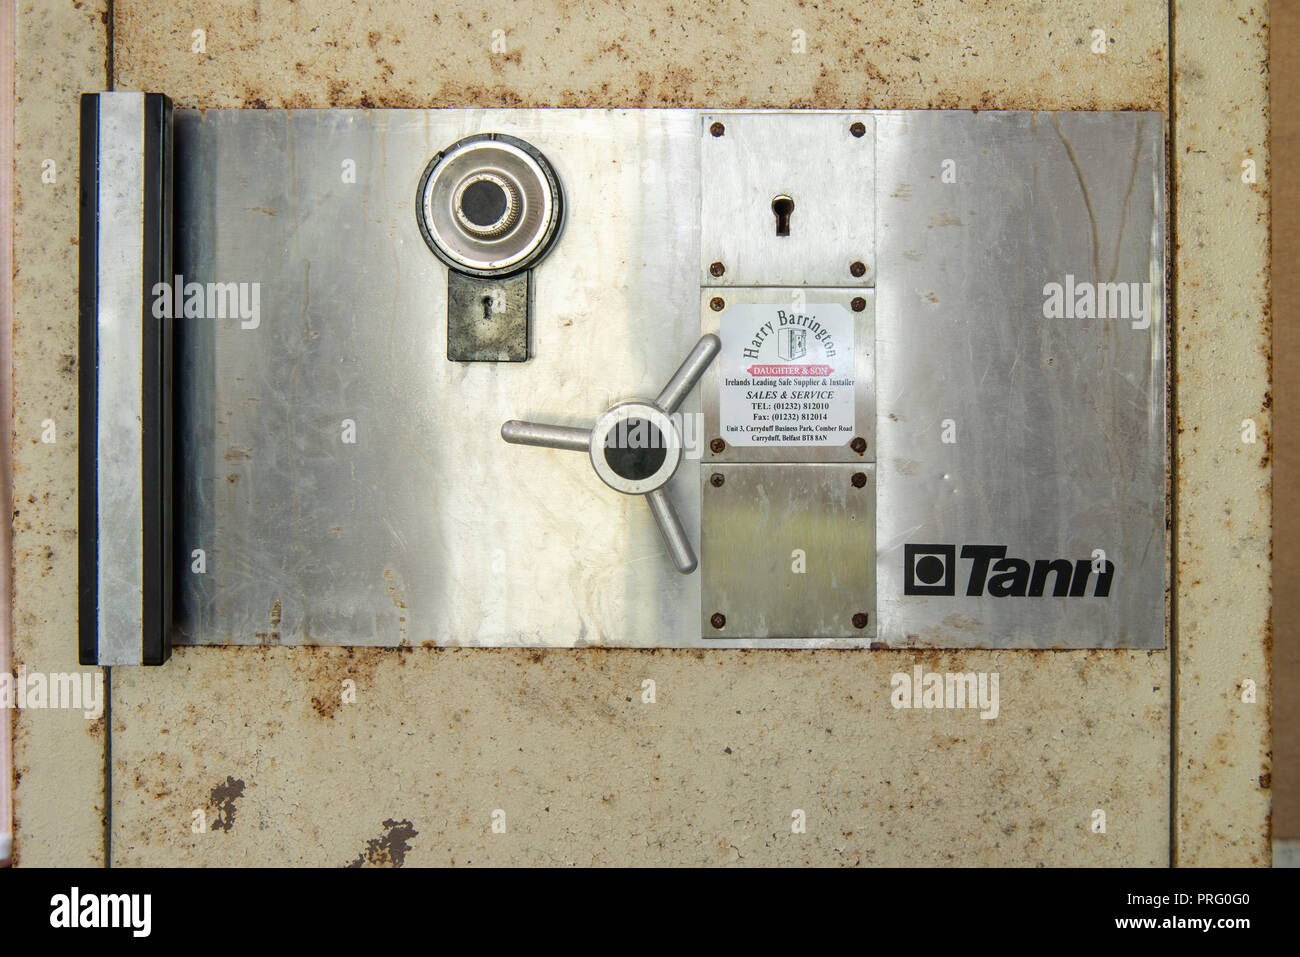 Large Tann safe in an abandoned office. - Stock Image